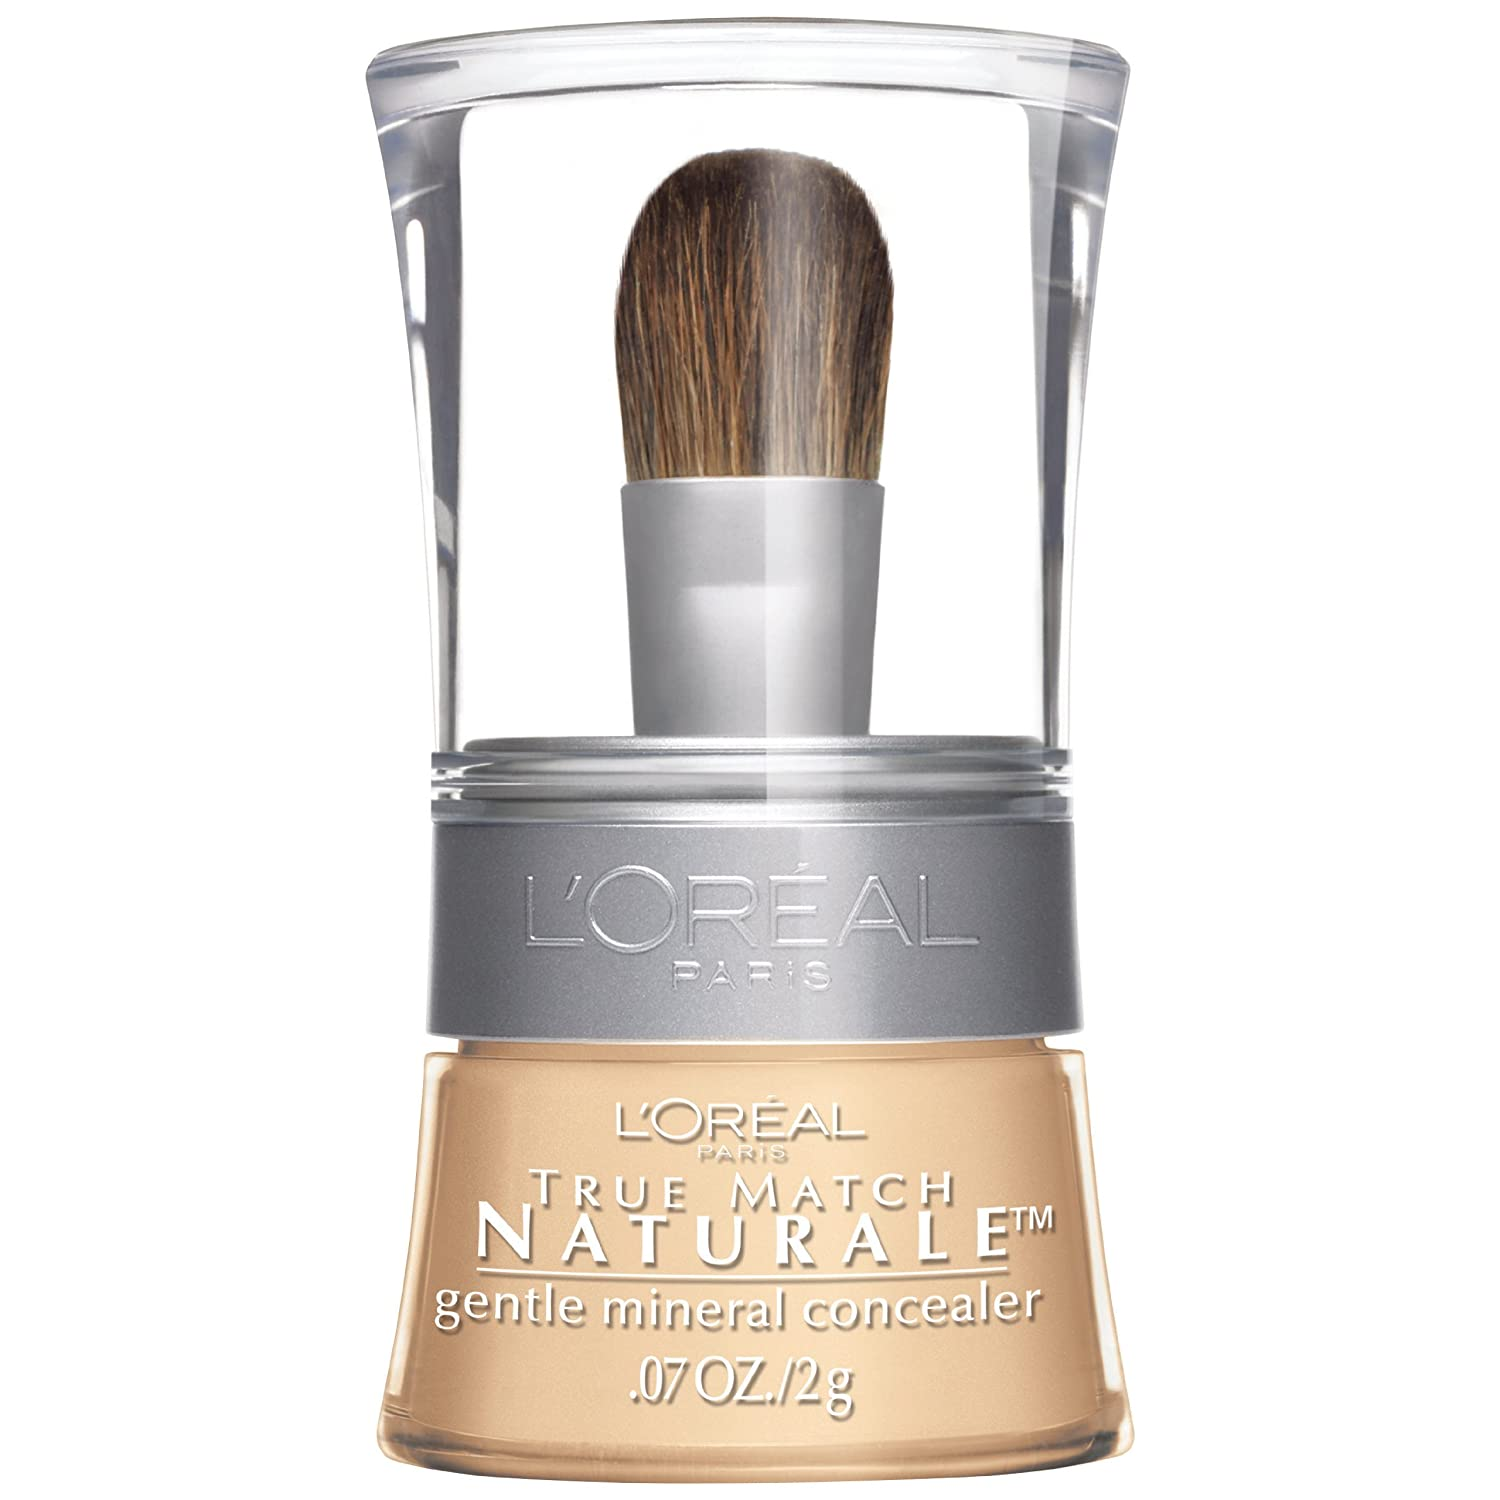 Bare Naturale Gentle Mineral Eye Shadow by L'Oreal #11